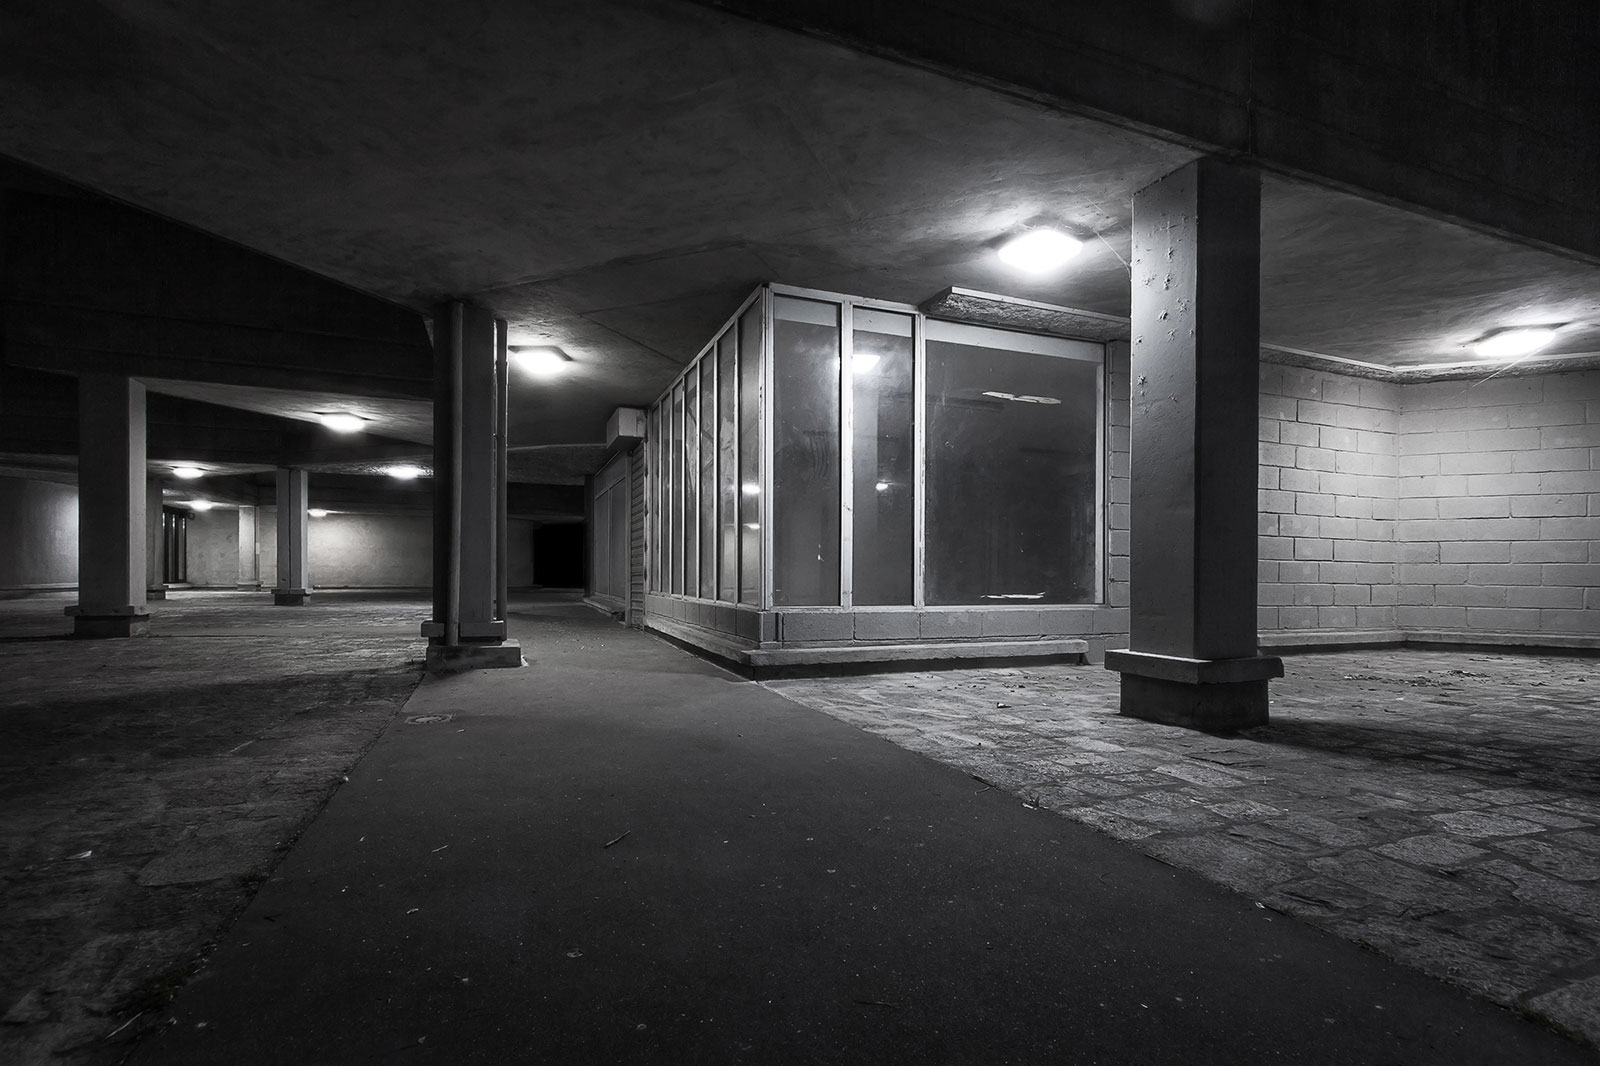 In the middle of nowhere - Night urban photography